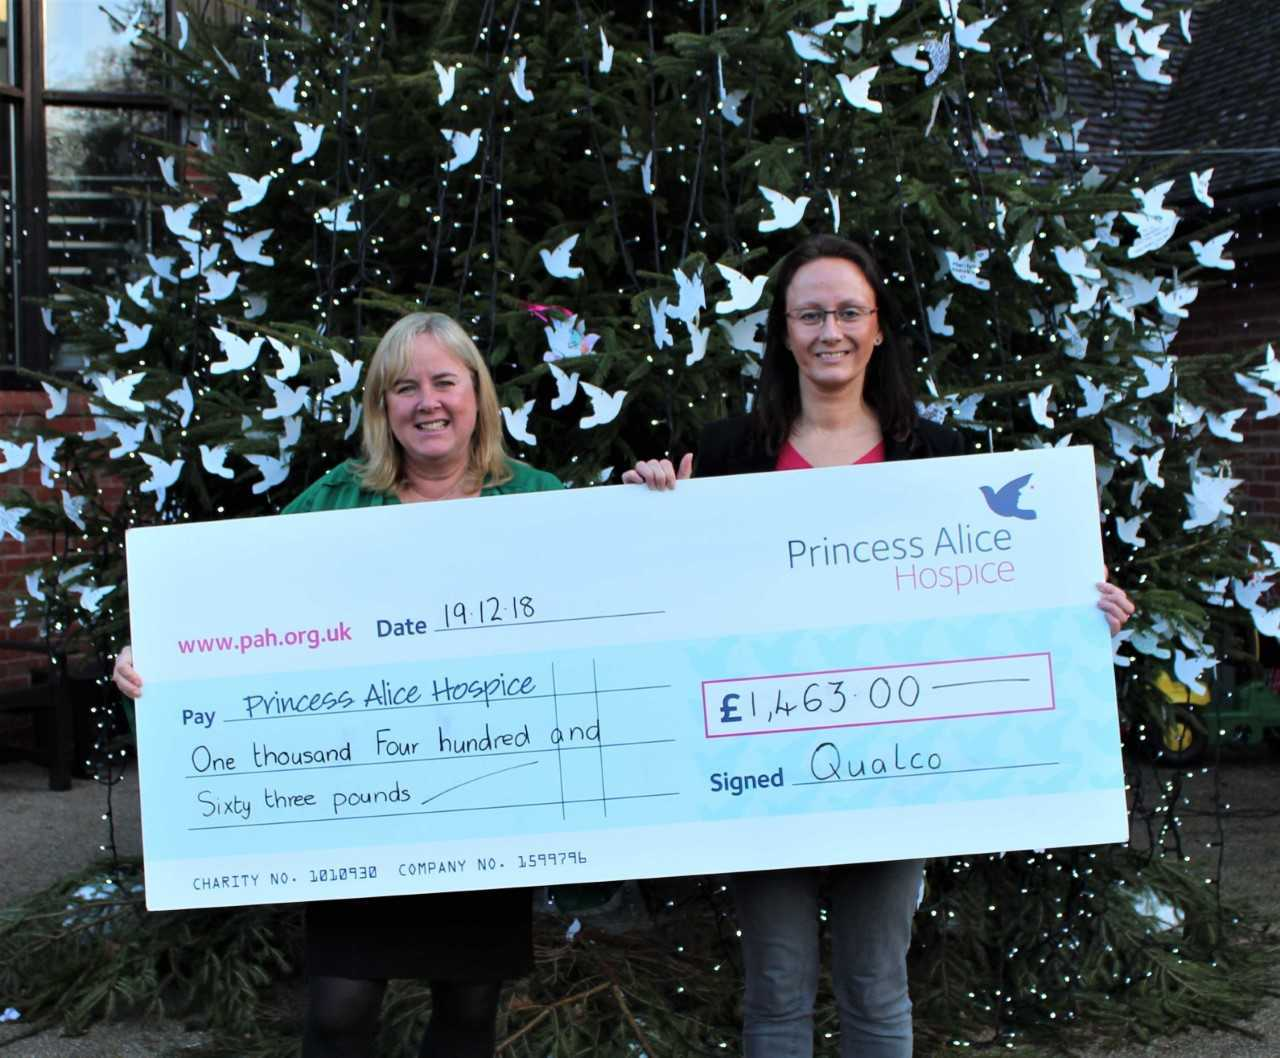 Jo de Buriatte, right, handing the giant cheque to Claire Woodward beside the Hospice Memory Tree covered in dove dedications